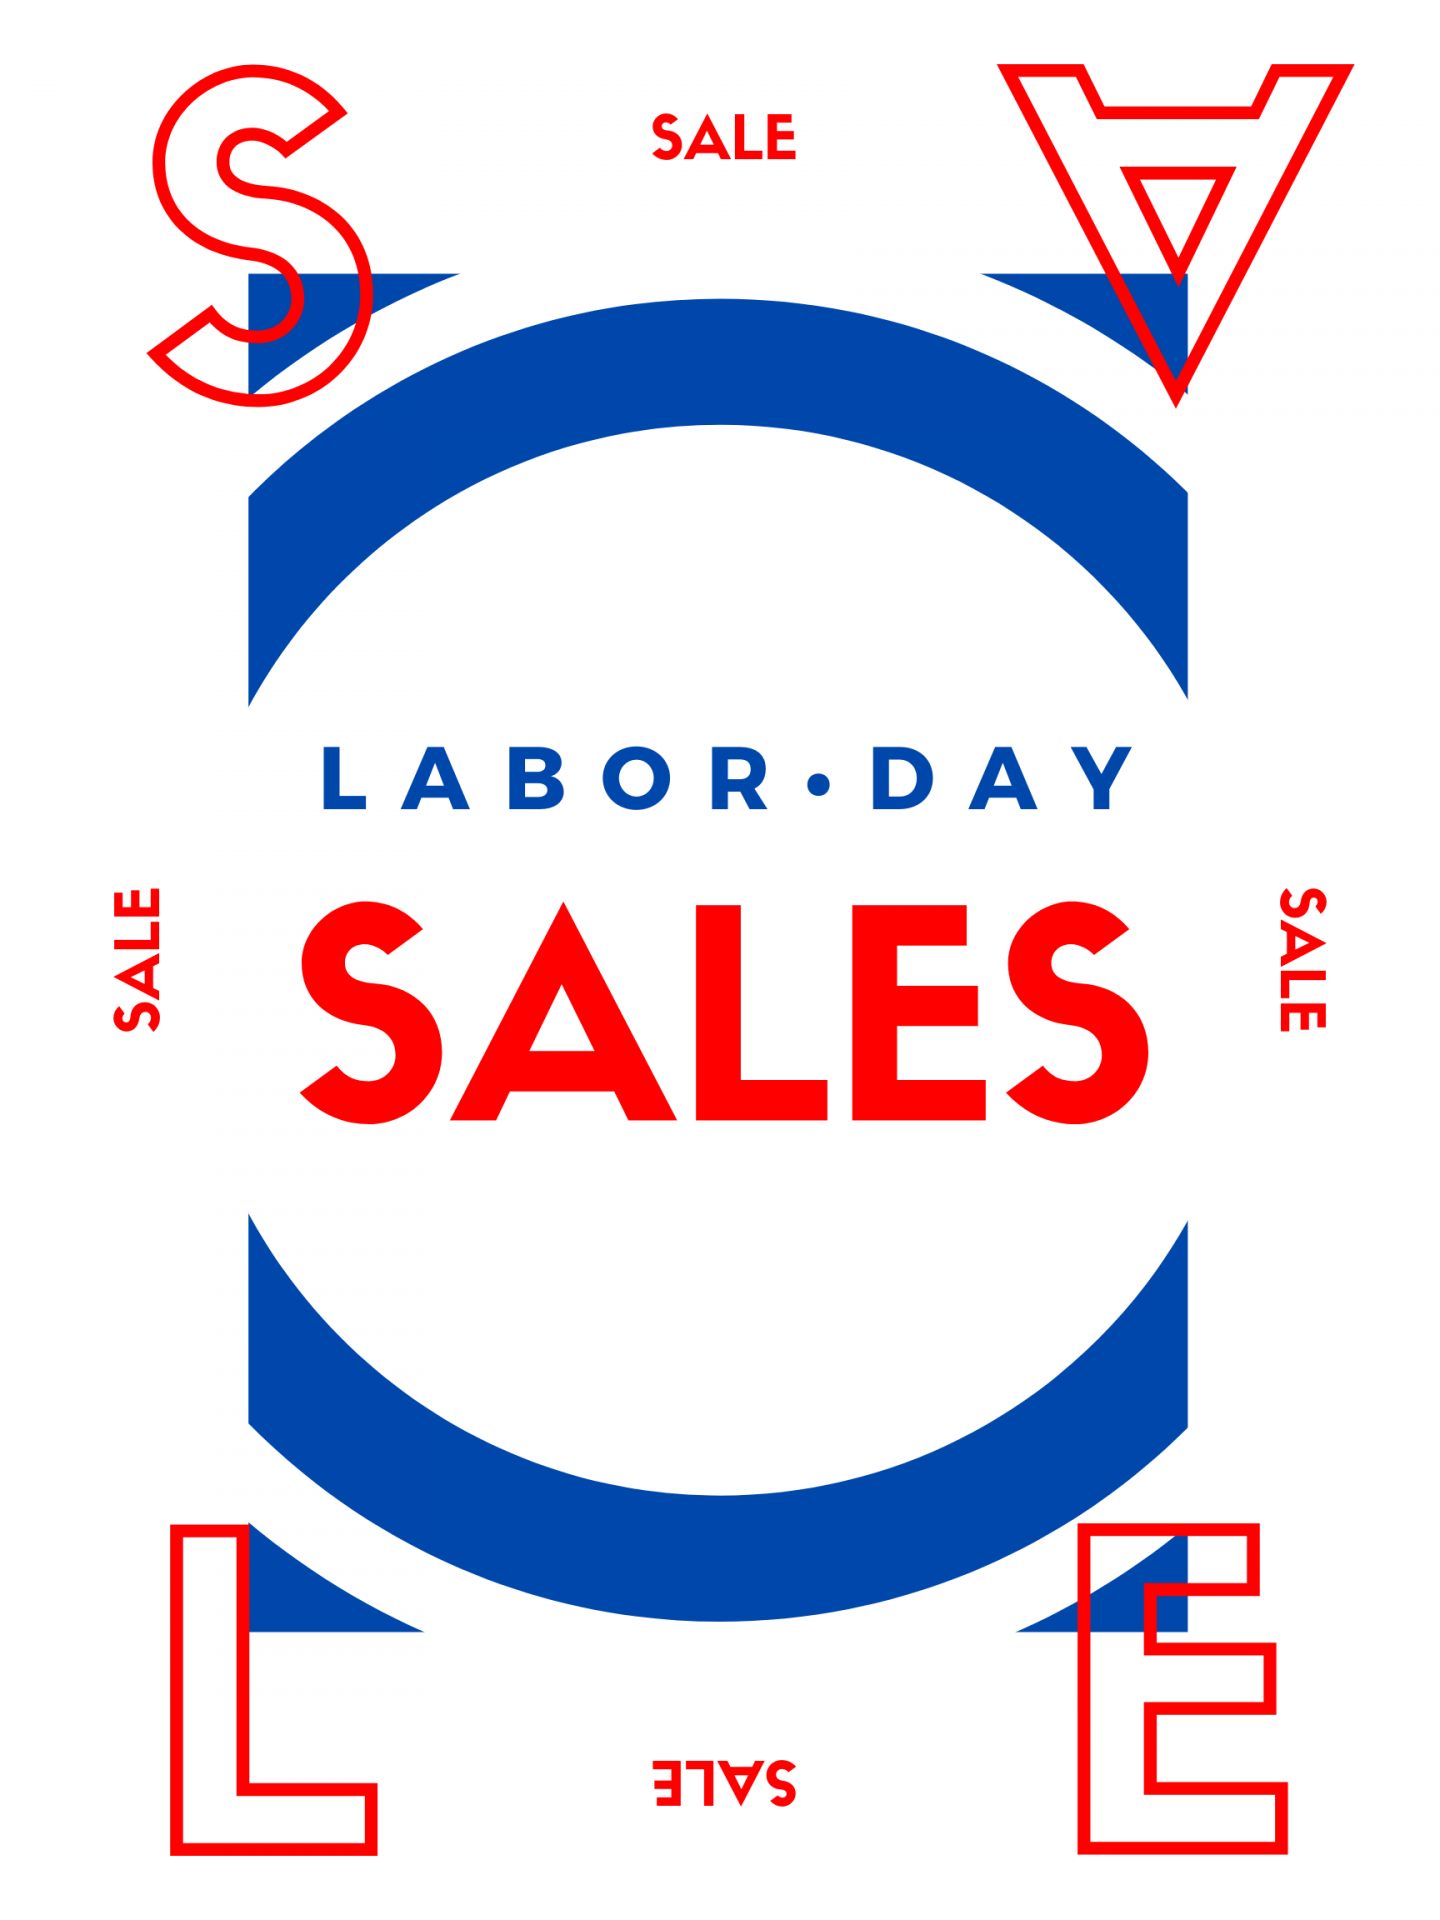 Labor Day Sale Roundup